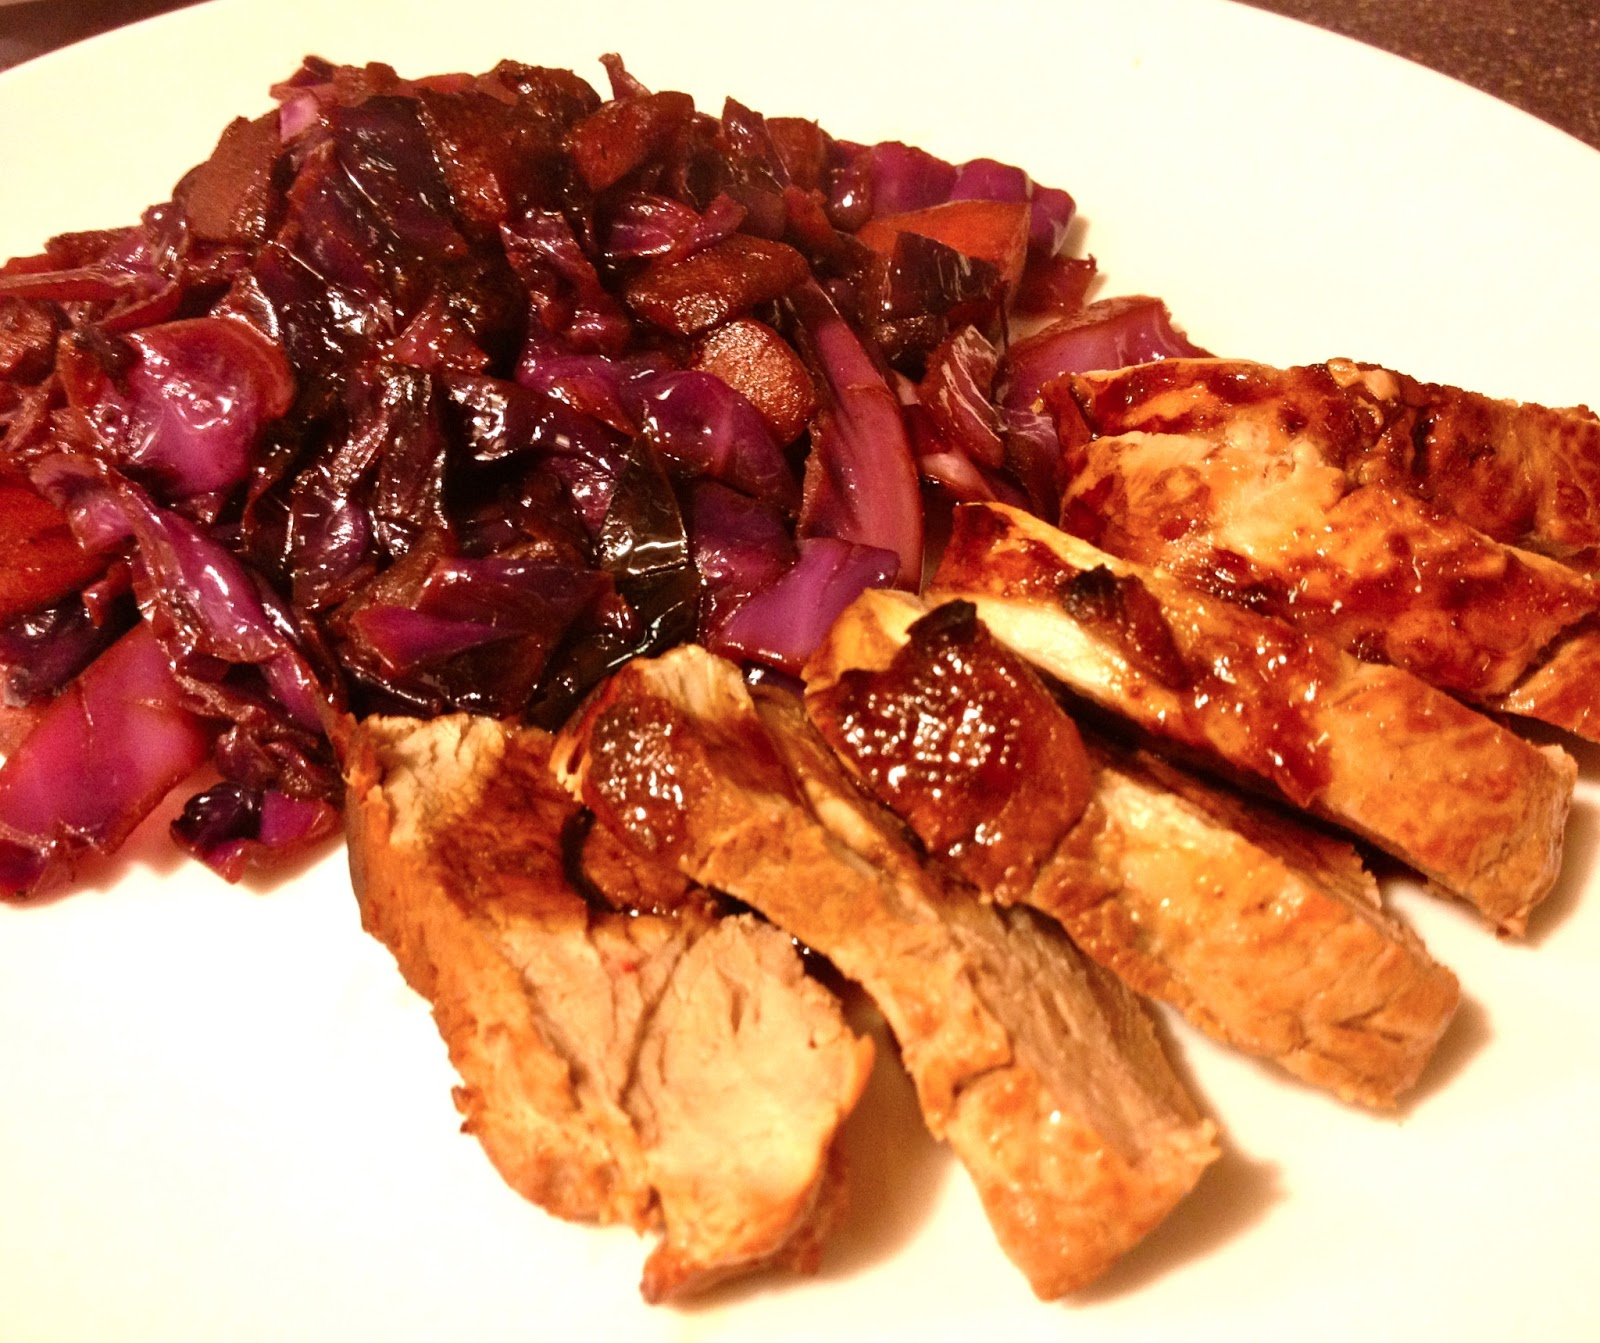 Bon Chappétit: beer-marinated pork tenderloin w/ red cabbage